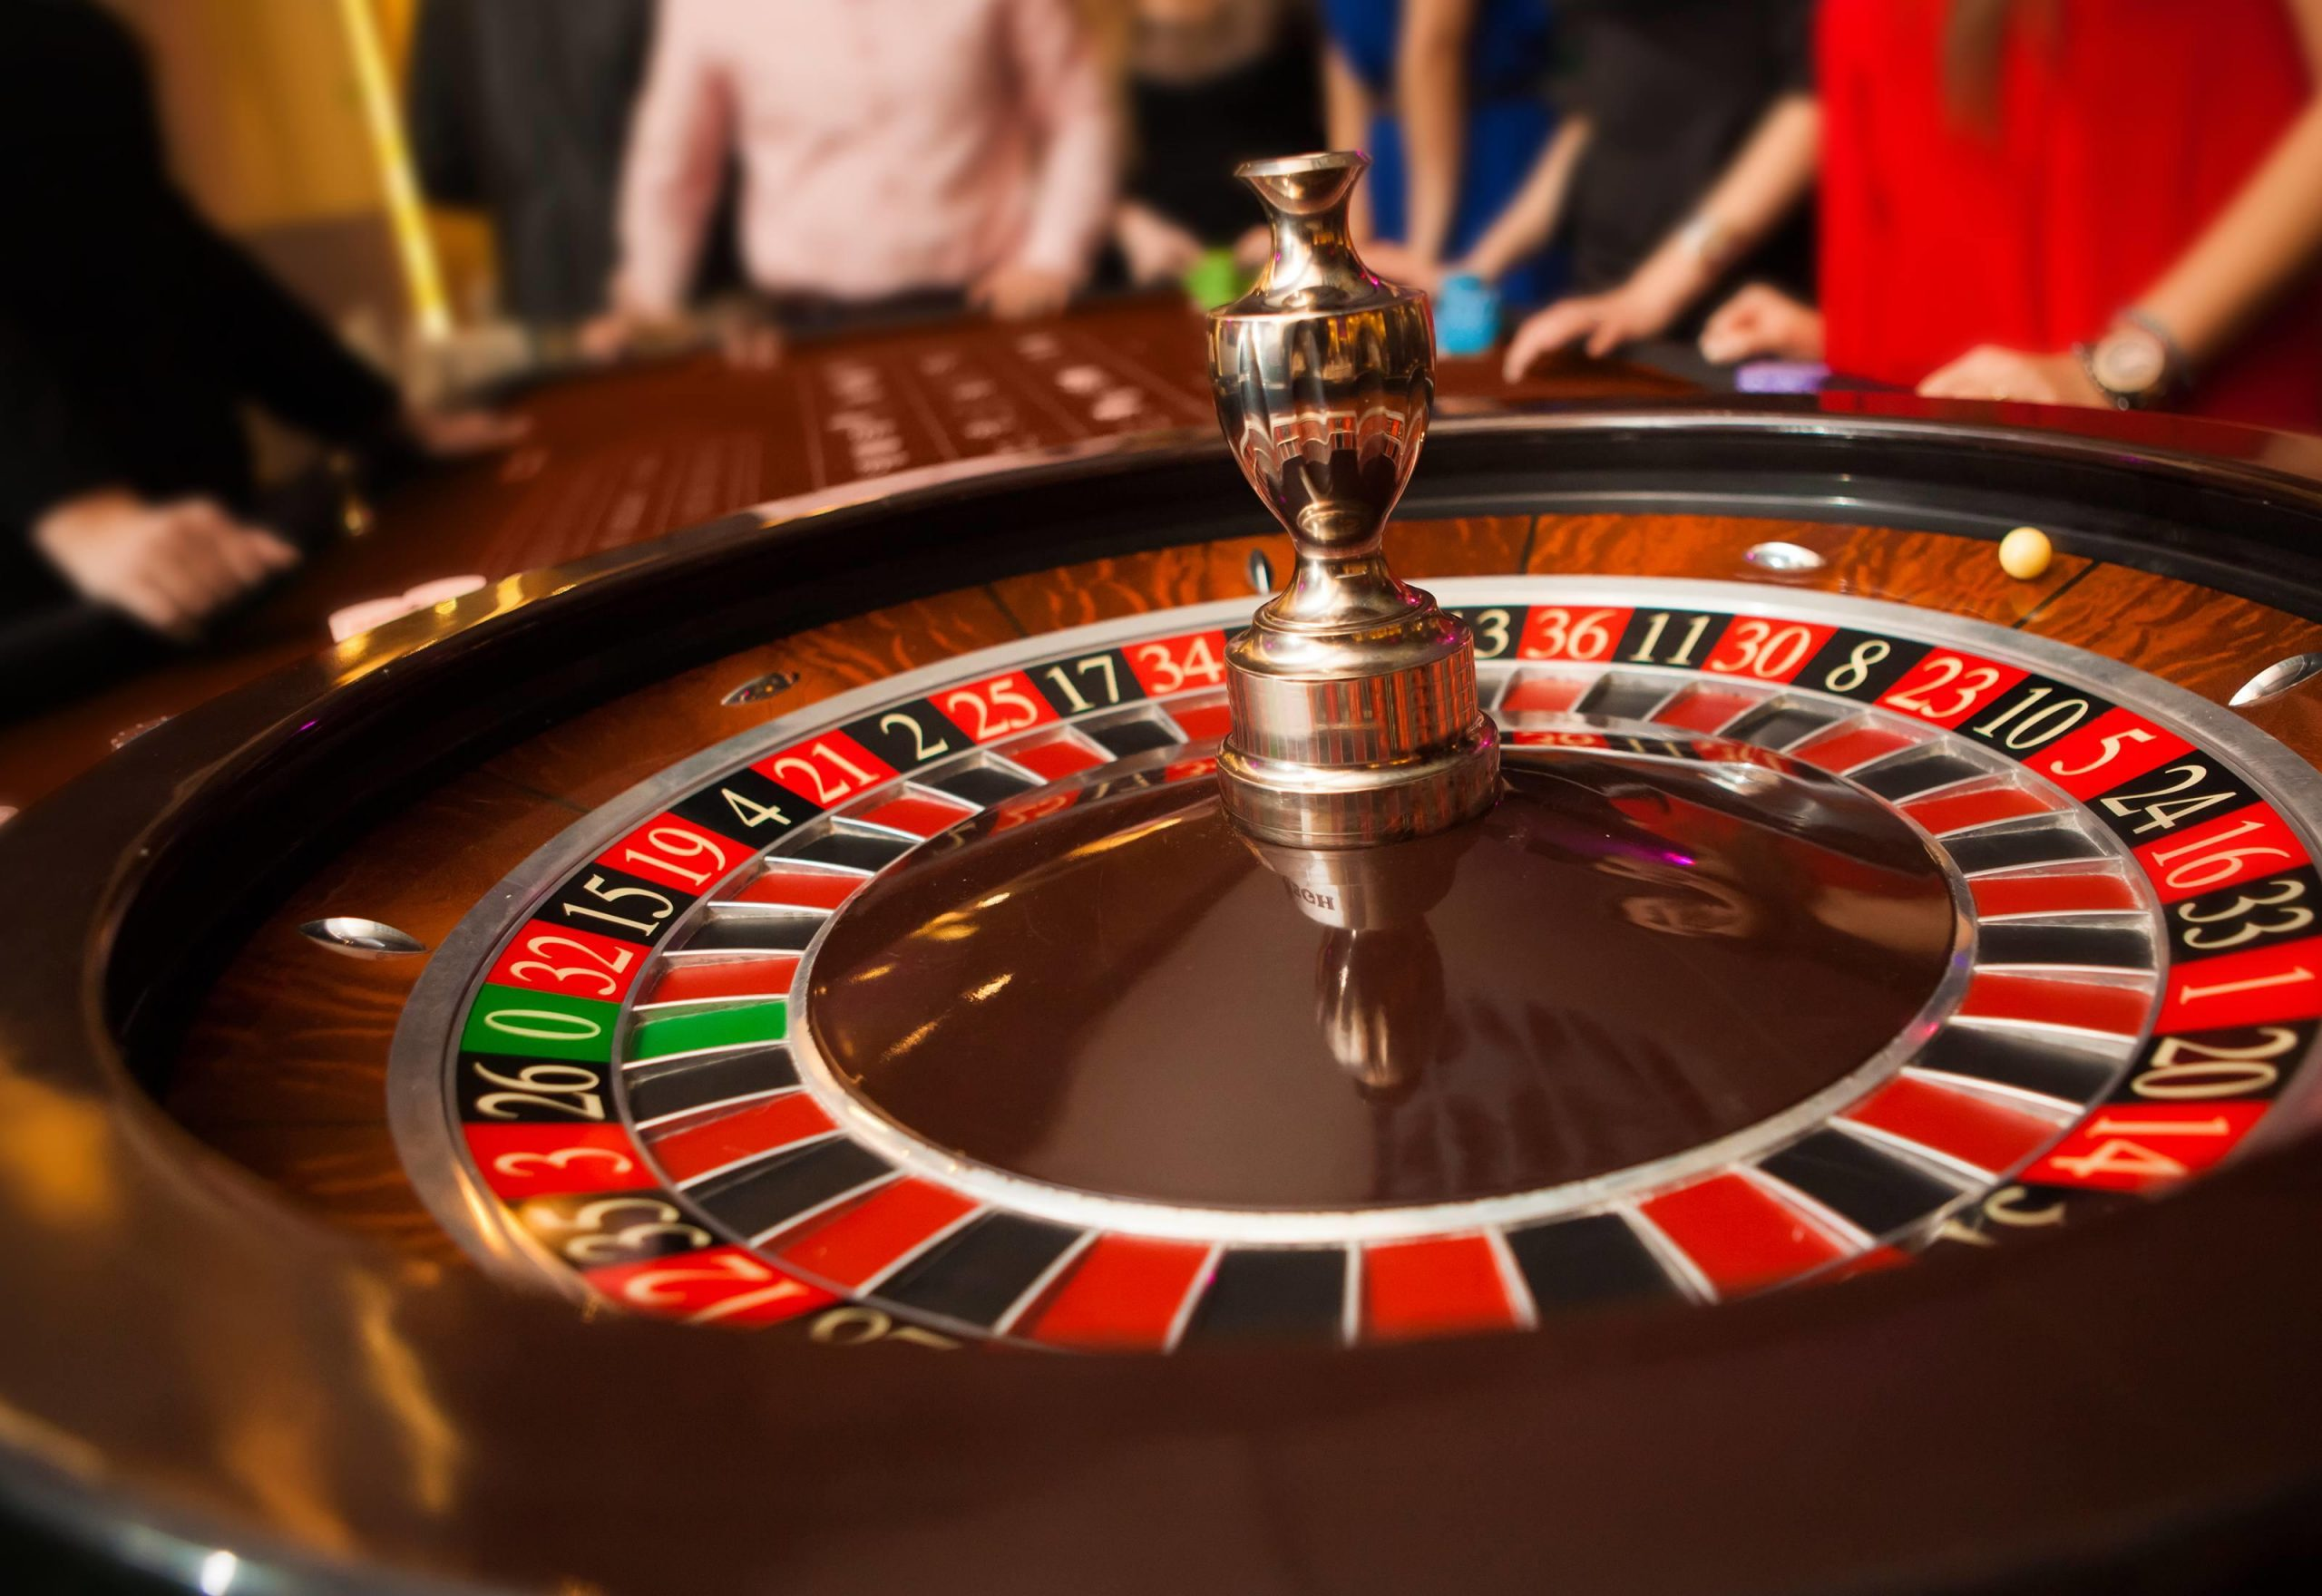 The best site for playing casino